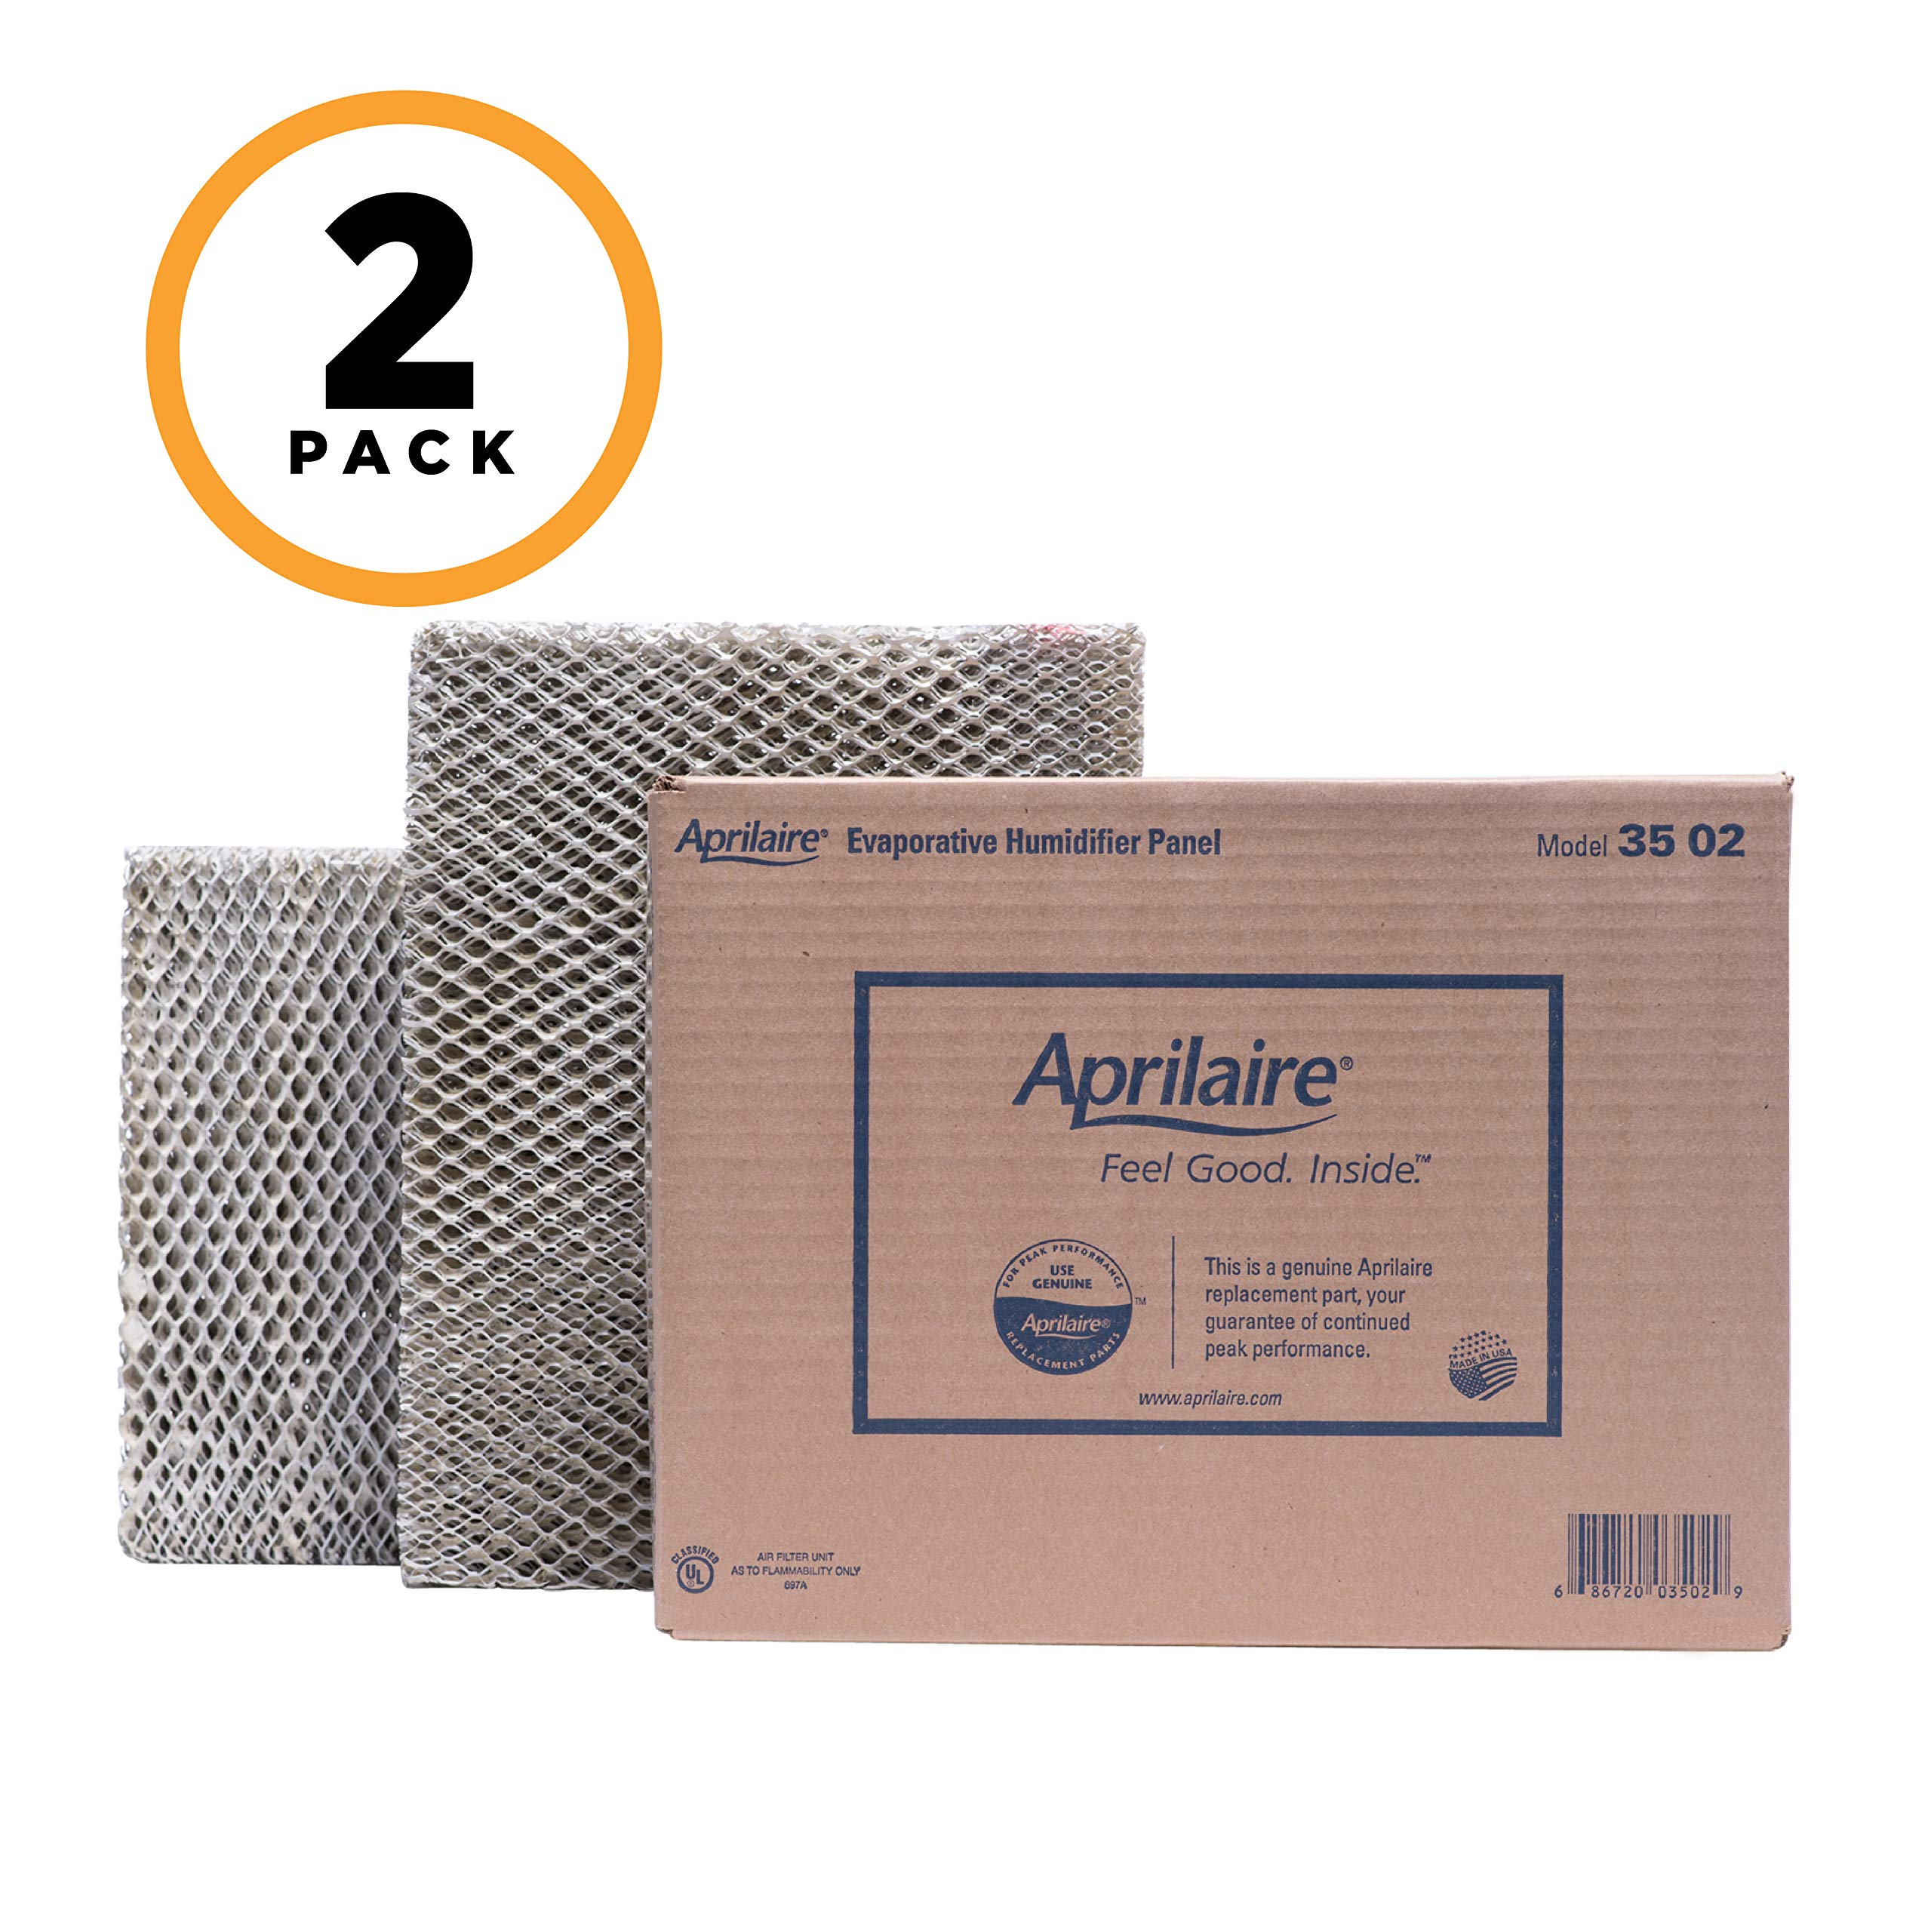 Aprilaire 35 Replacement Water Panel for Aprilaire Whole House Humidifier Models 350, 360, 560, 568, 600, 600A, 600M, 700, 700A, 700M, 760, 768 (Pack of 2) by Aprilaire